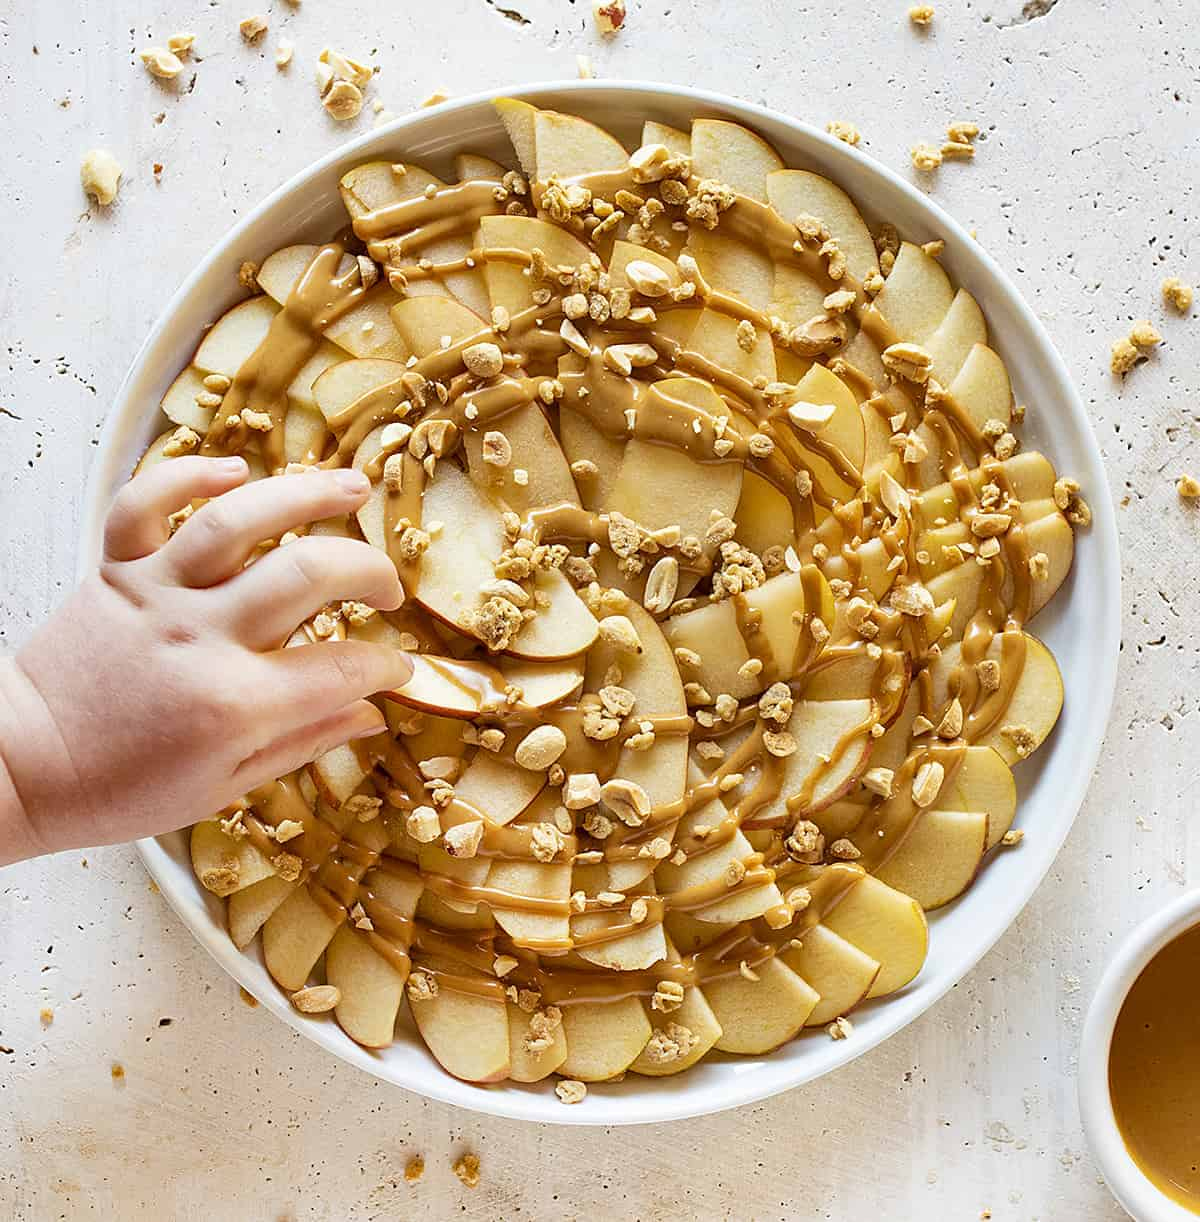 Apple and Peanut Butter Nachos